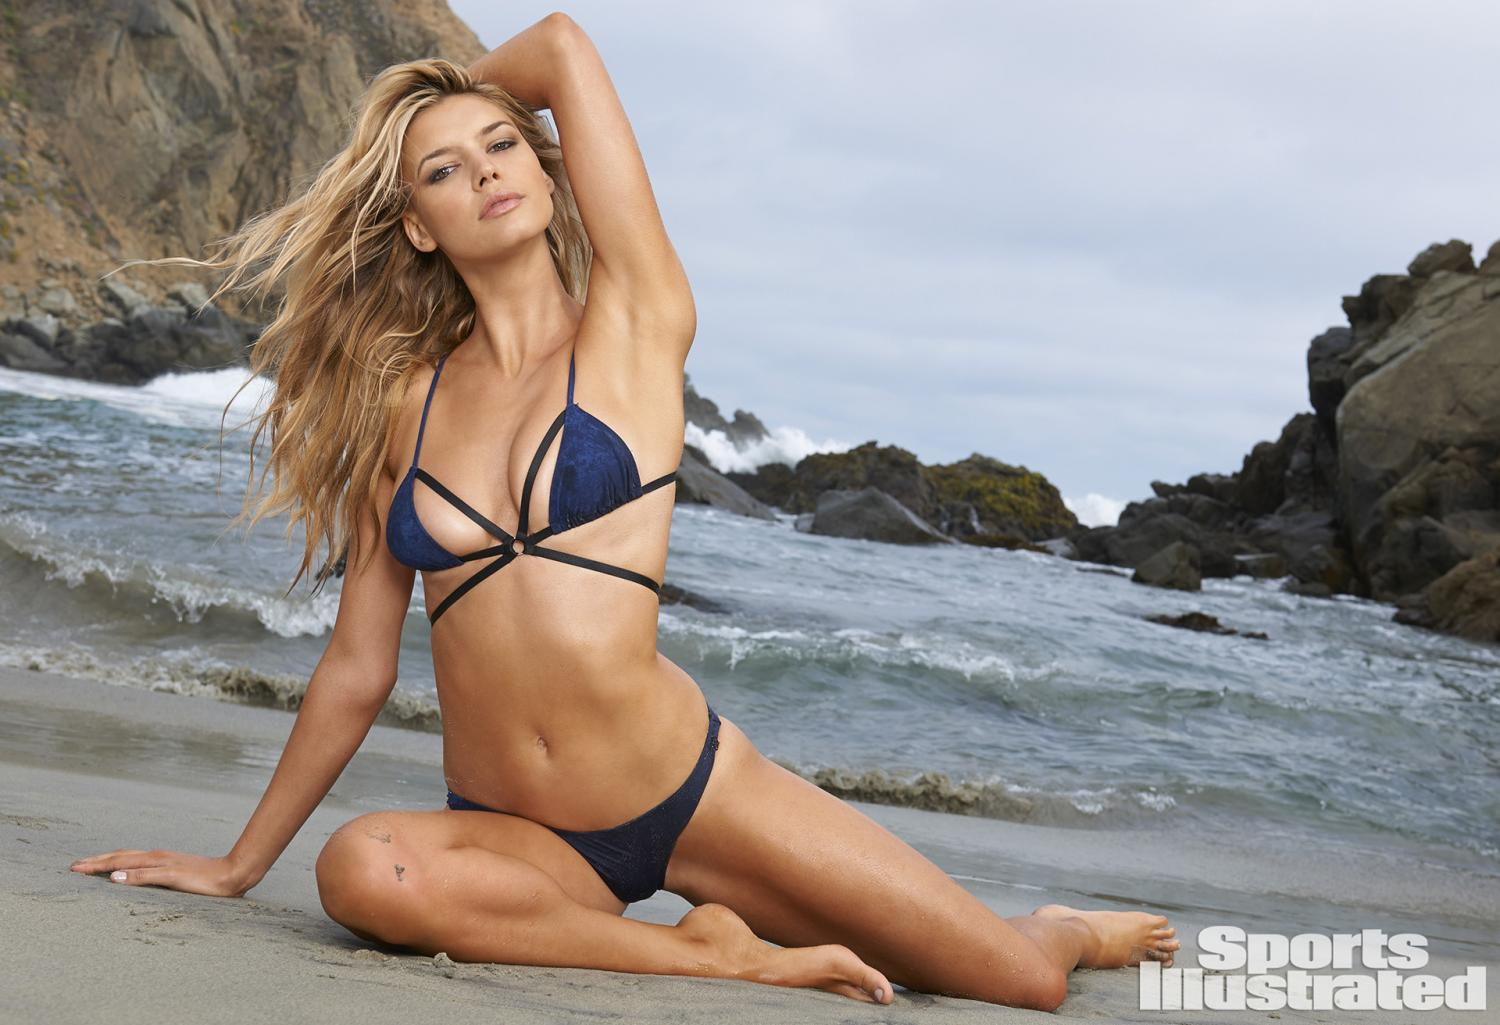 Kelly Rohrbach Swimsuit Photos, Sports Illustrated Swimsuit 2015